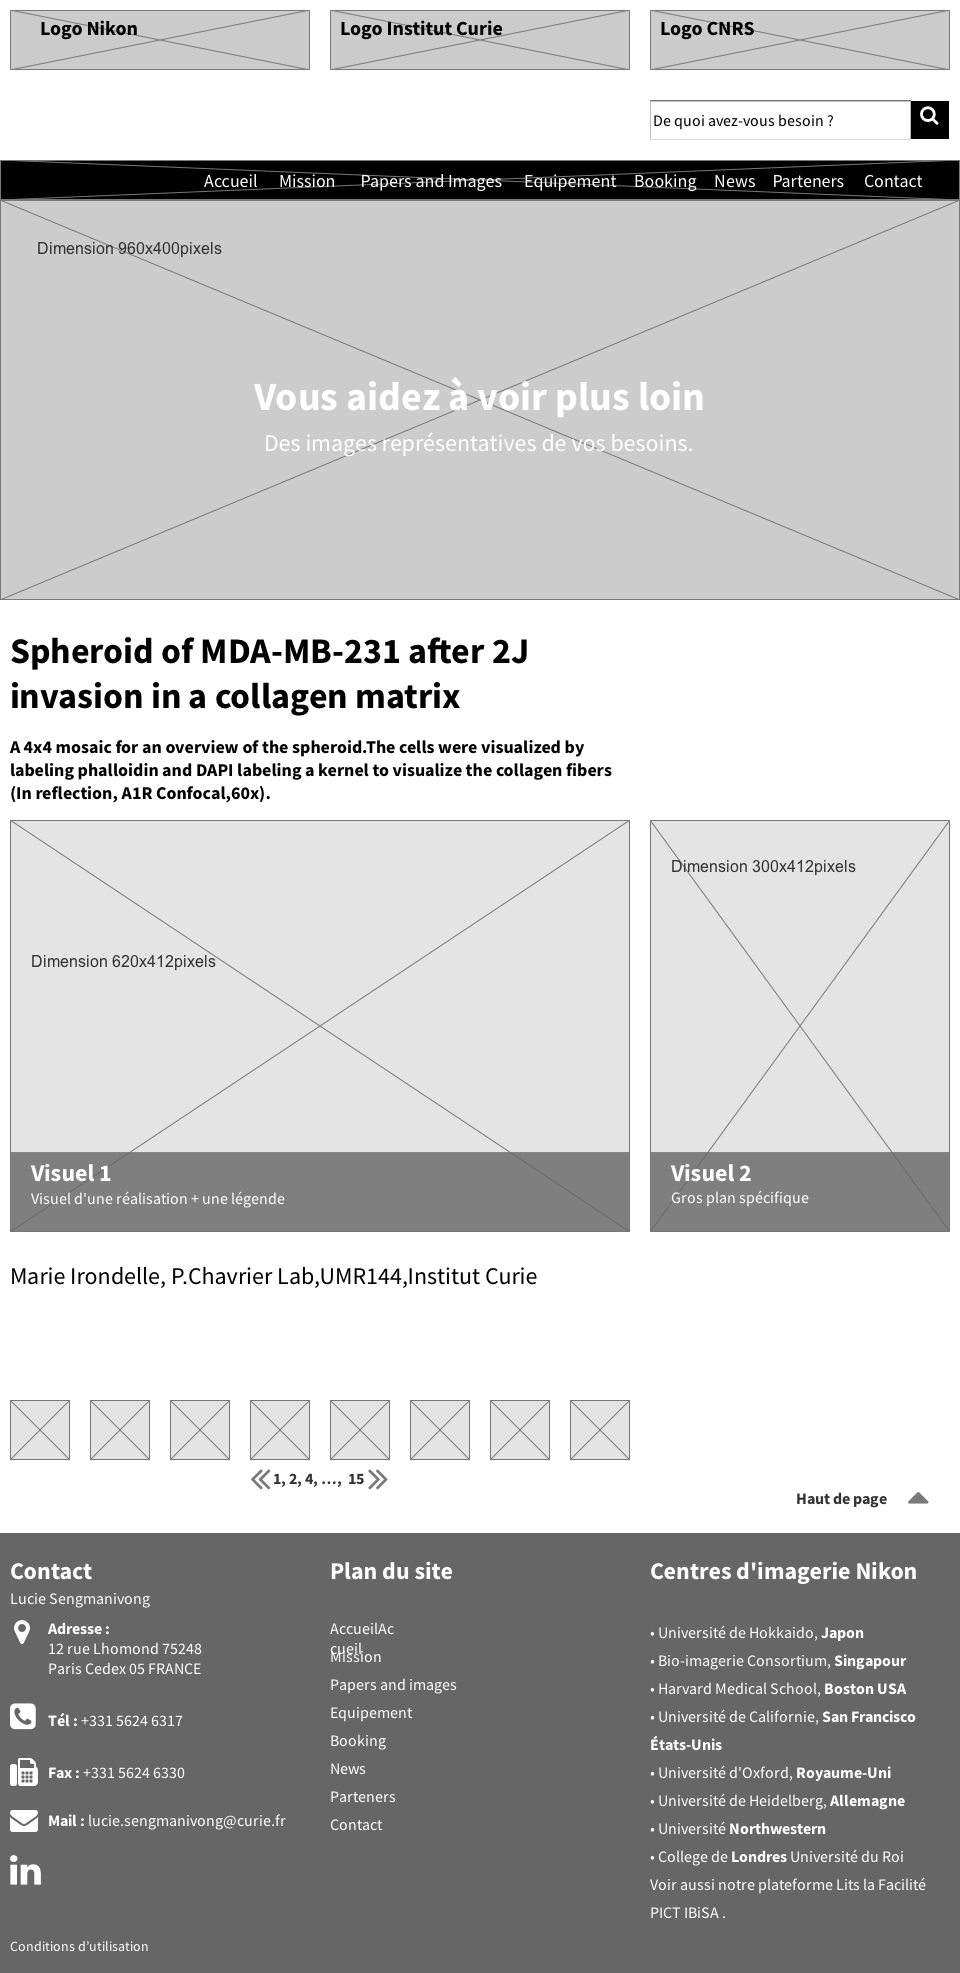 fiche_papers_images.png